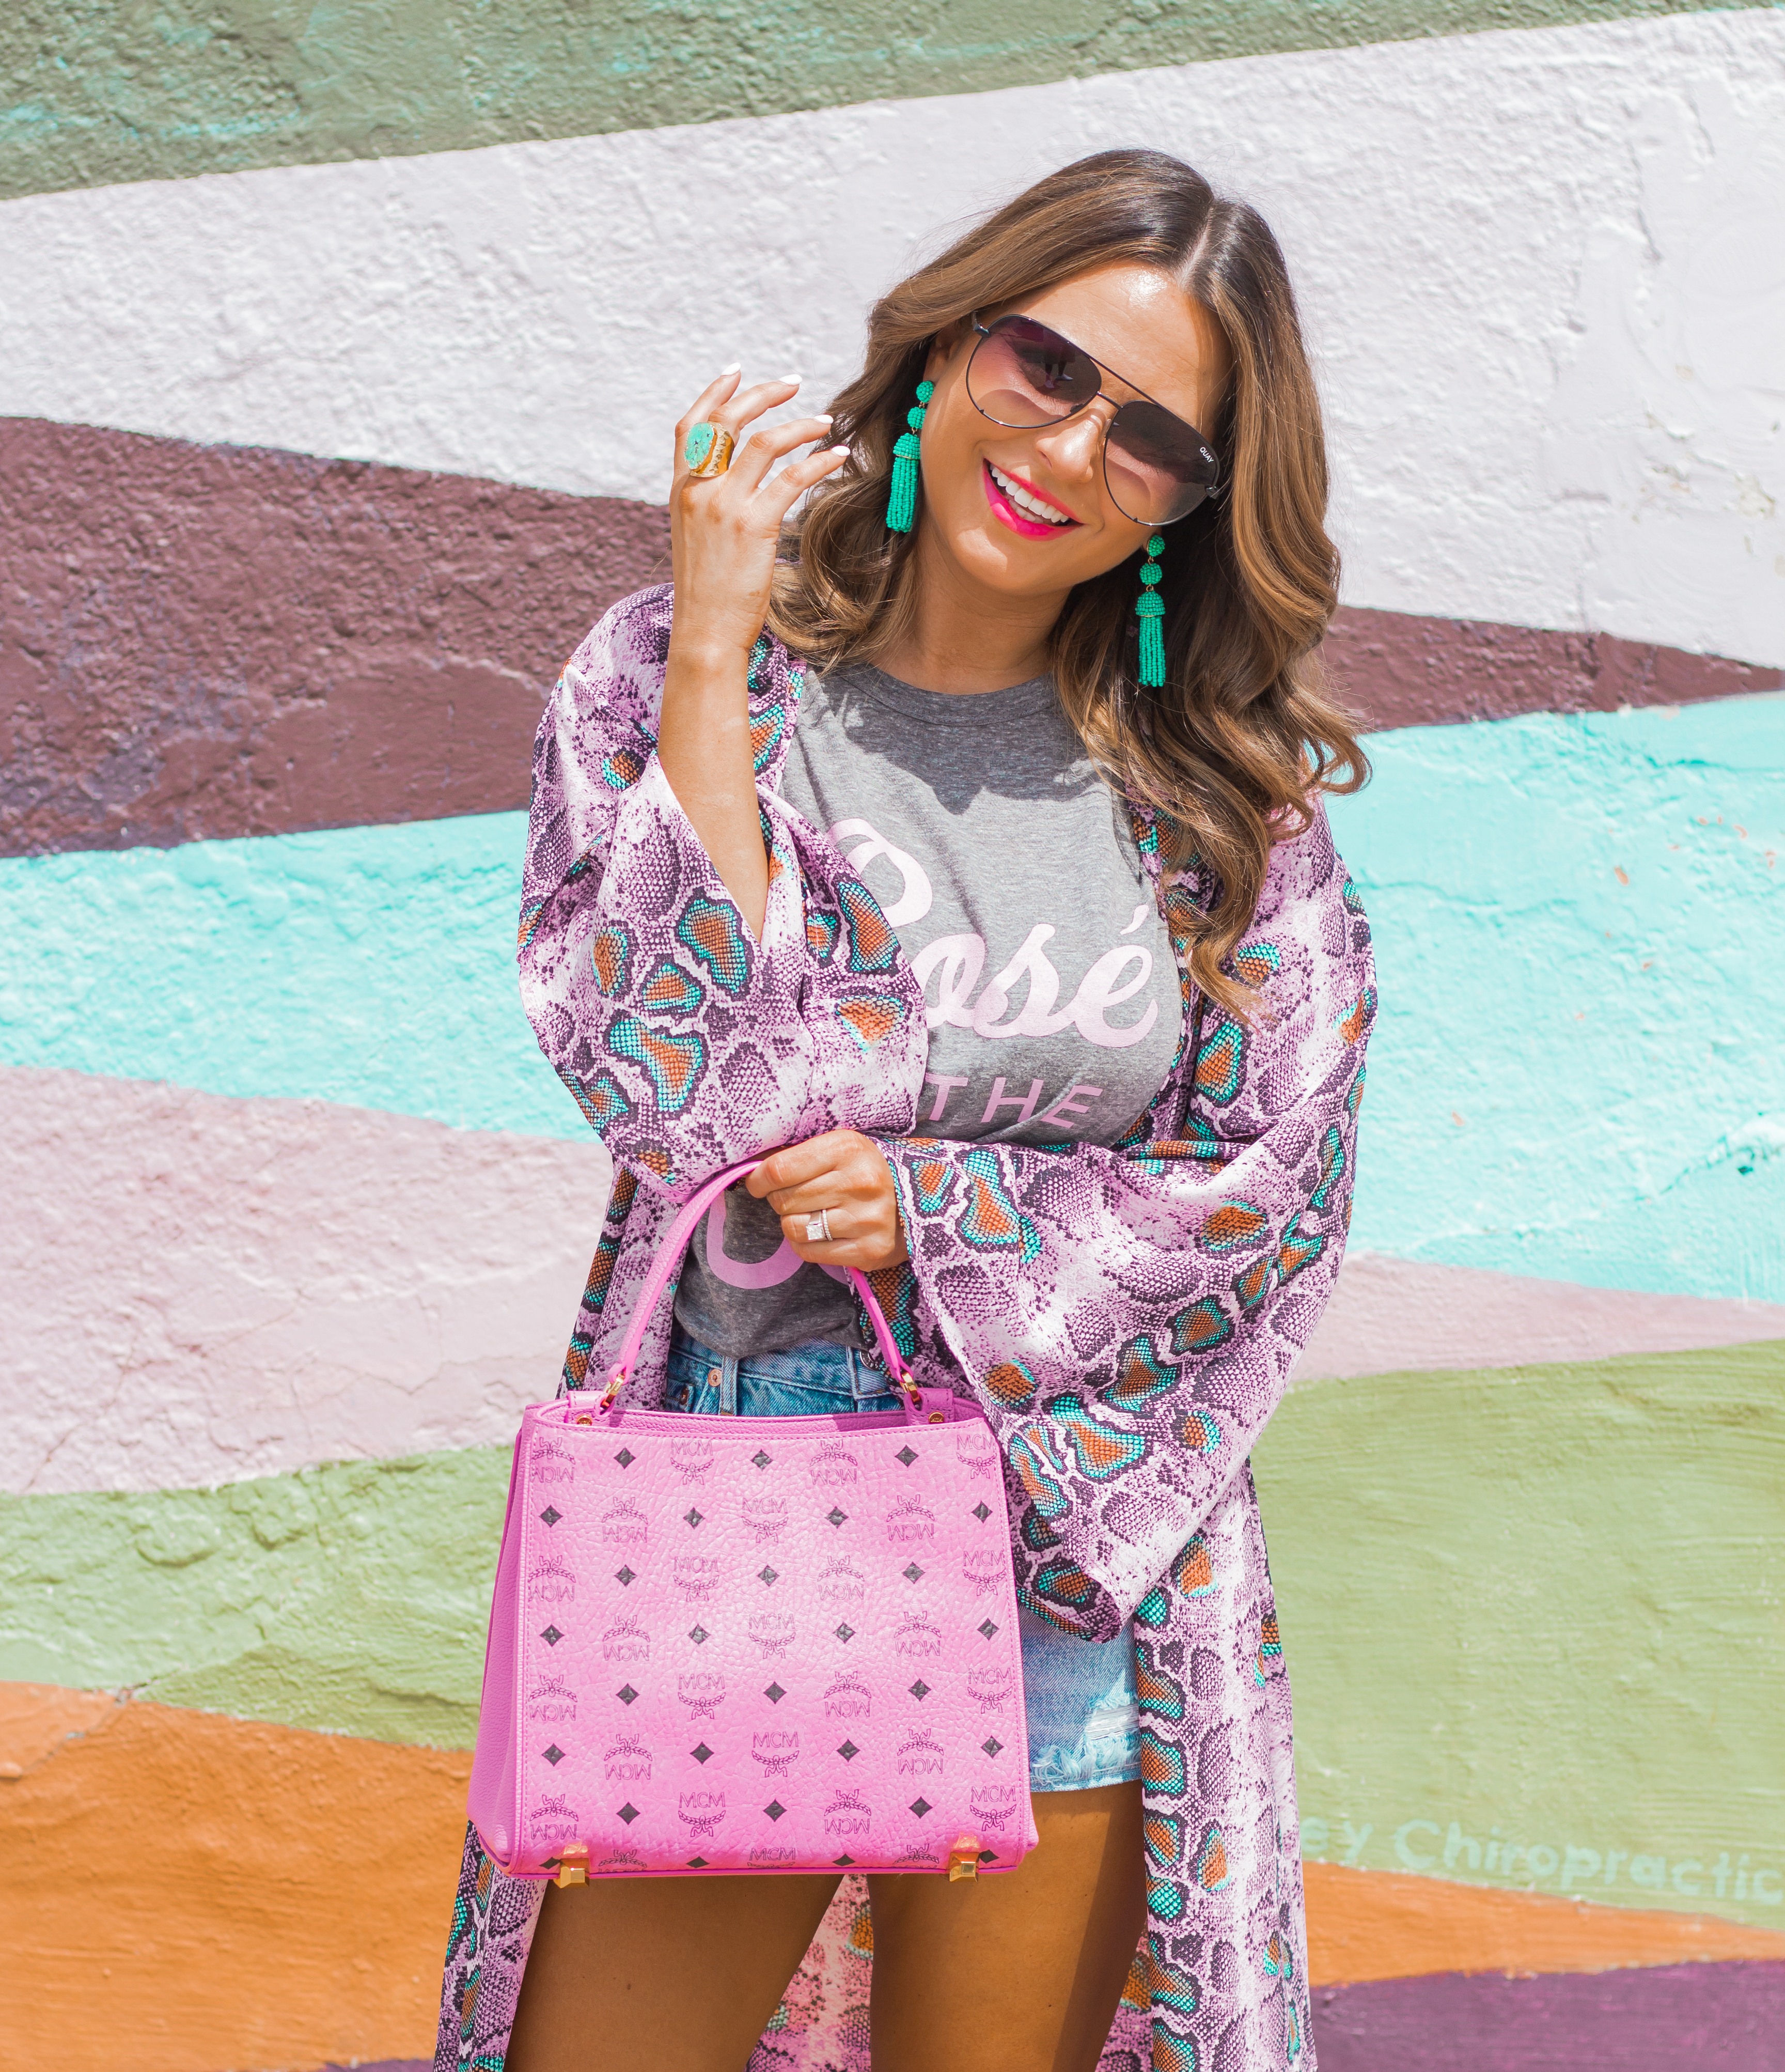 Rosé in the USA-Buddy Love-Kimono-Sugar Boutique-Women's Fashion-Summer Outfit-4th of July-Espadrille Wedges-MCM Bag-Pink Bag-Omaha Blogger-Sabby Style-Agolde Jean Shorts-Turquoise Jewelry-Quay Sunglasses-Colorful Style-Omaha-Nebraska-BaubleBar Earrings-4